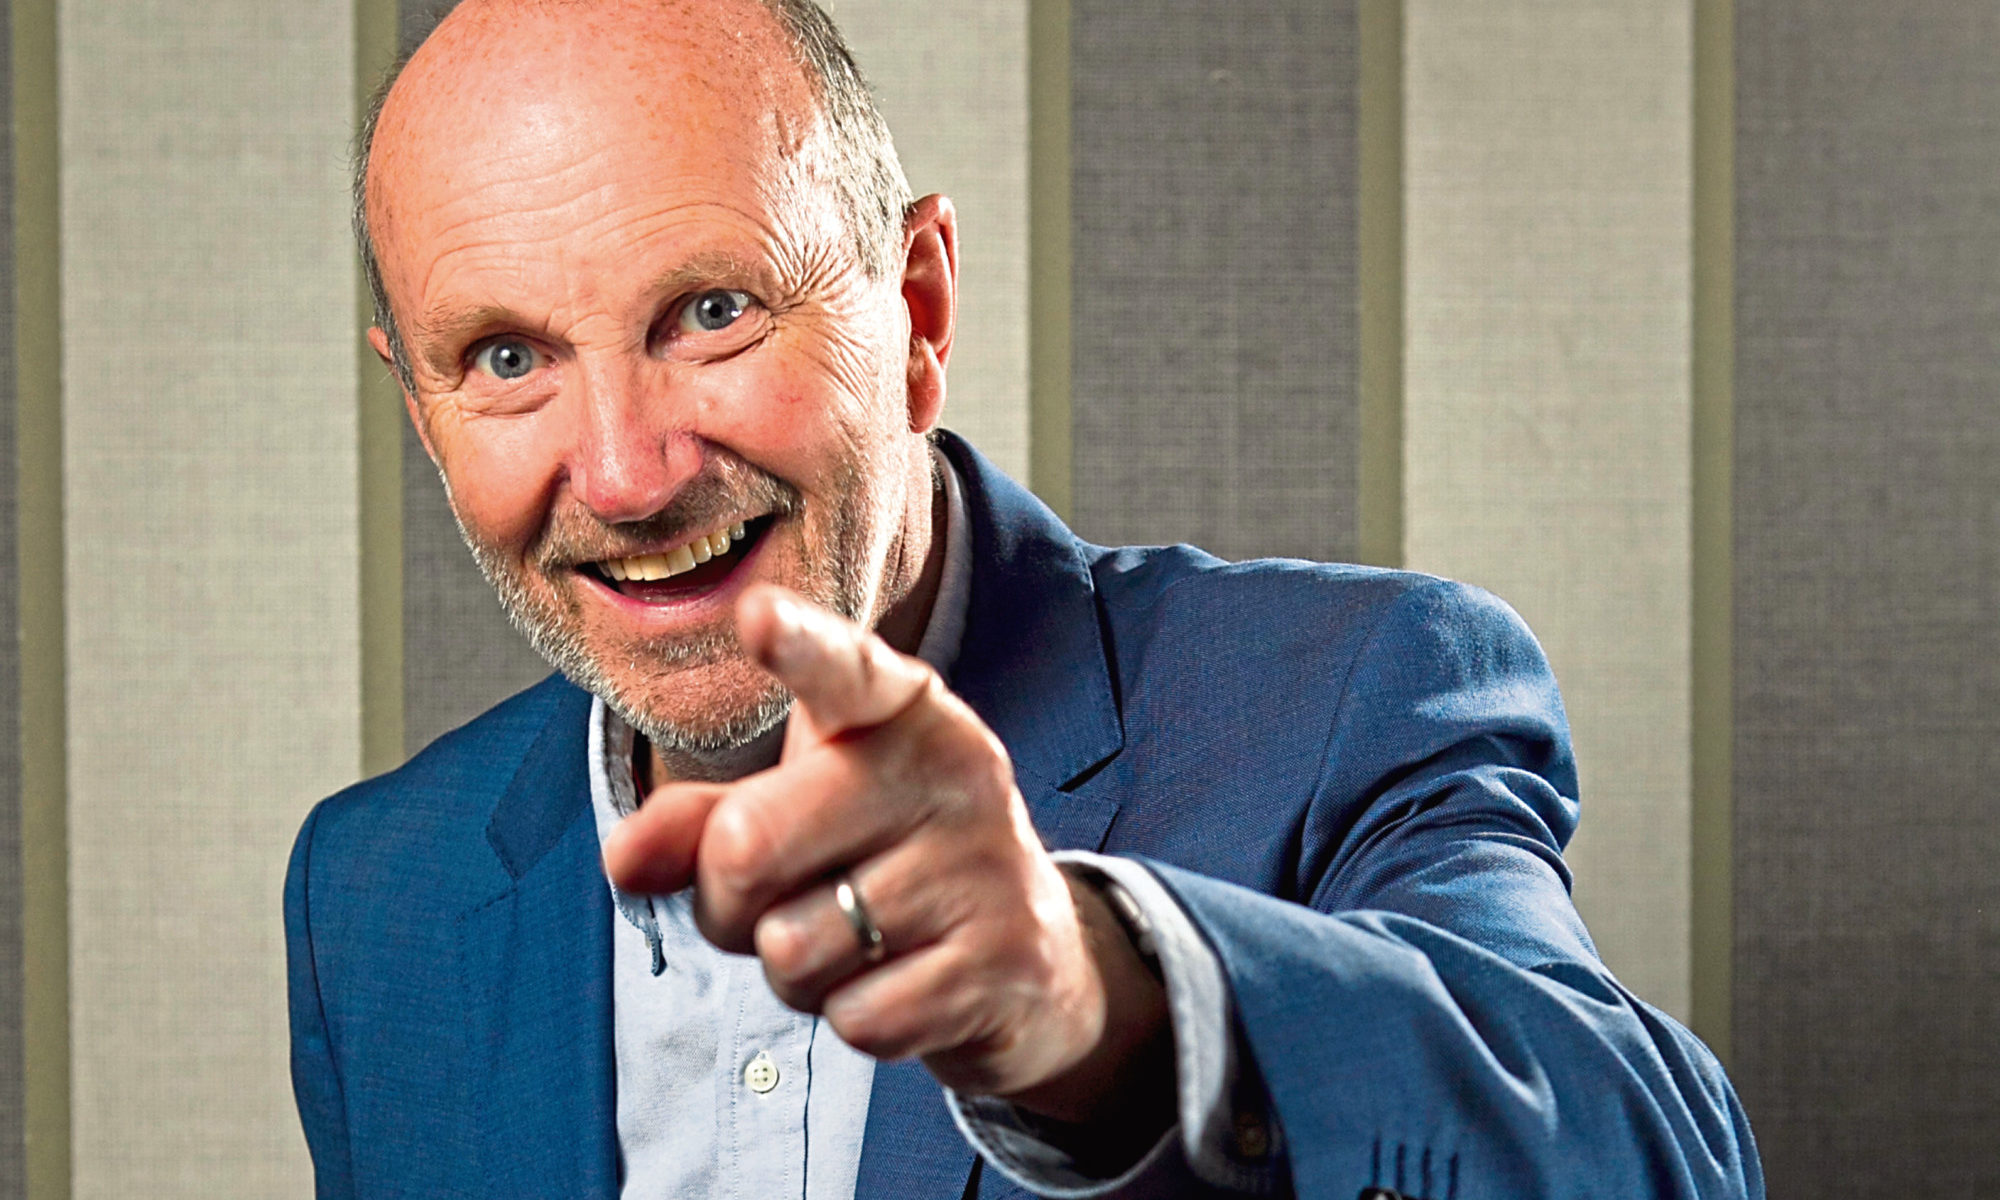 Scots comedian, Fred MacAulay